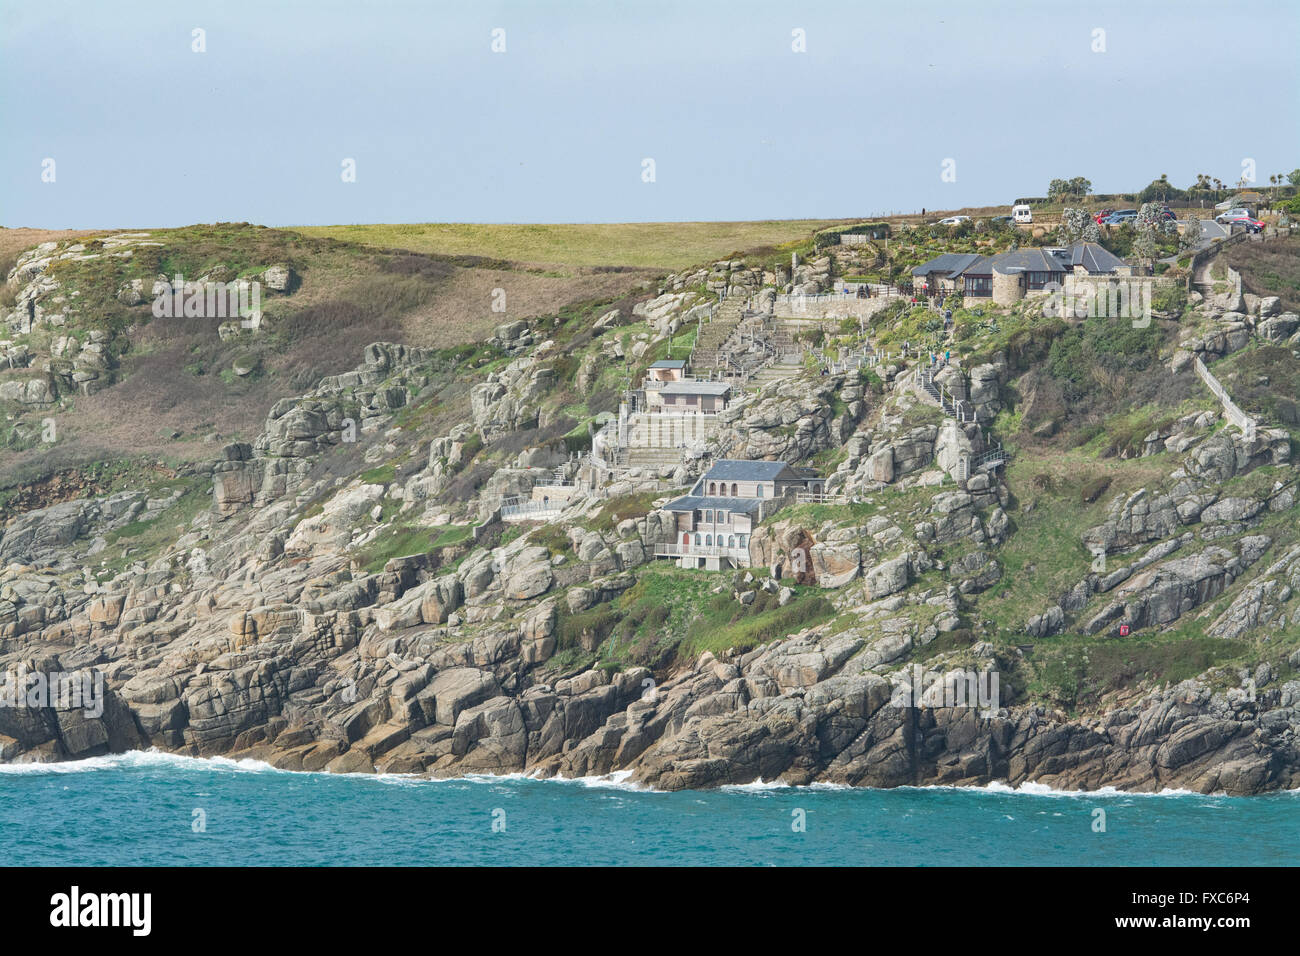 Treen, Cornwall, UK. 14th April 2016. UK Weather. Mild and sunny at Treen, near Porthcurno, however rain is forecast - Stock Image